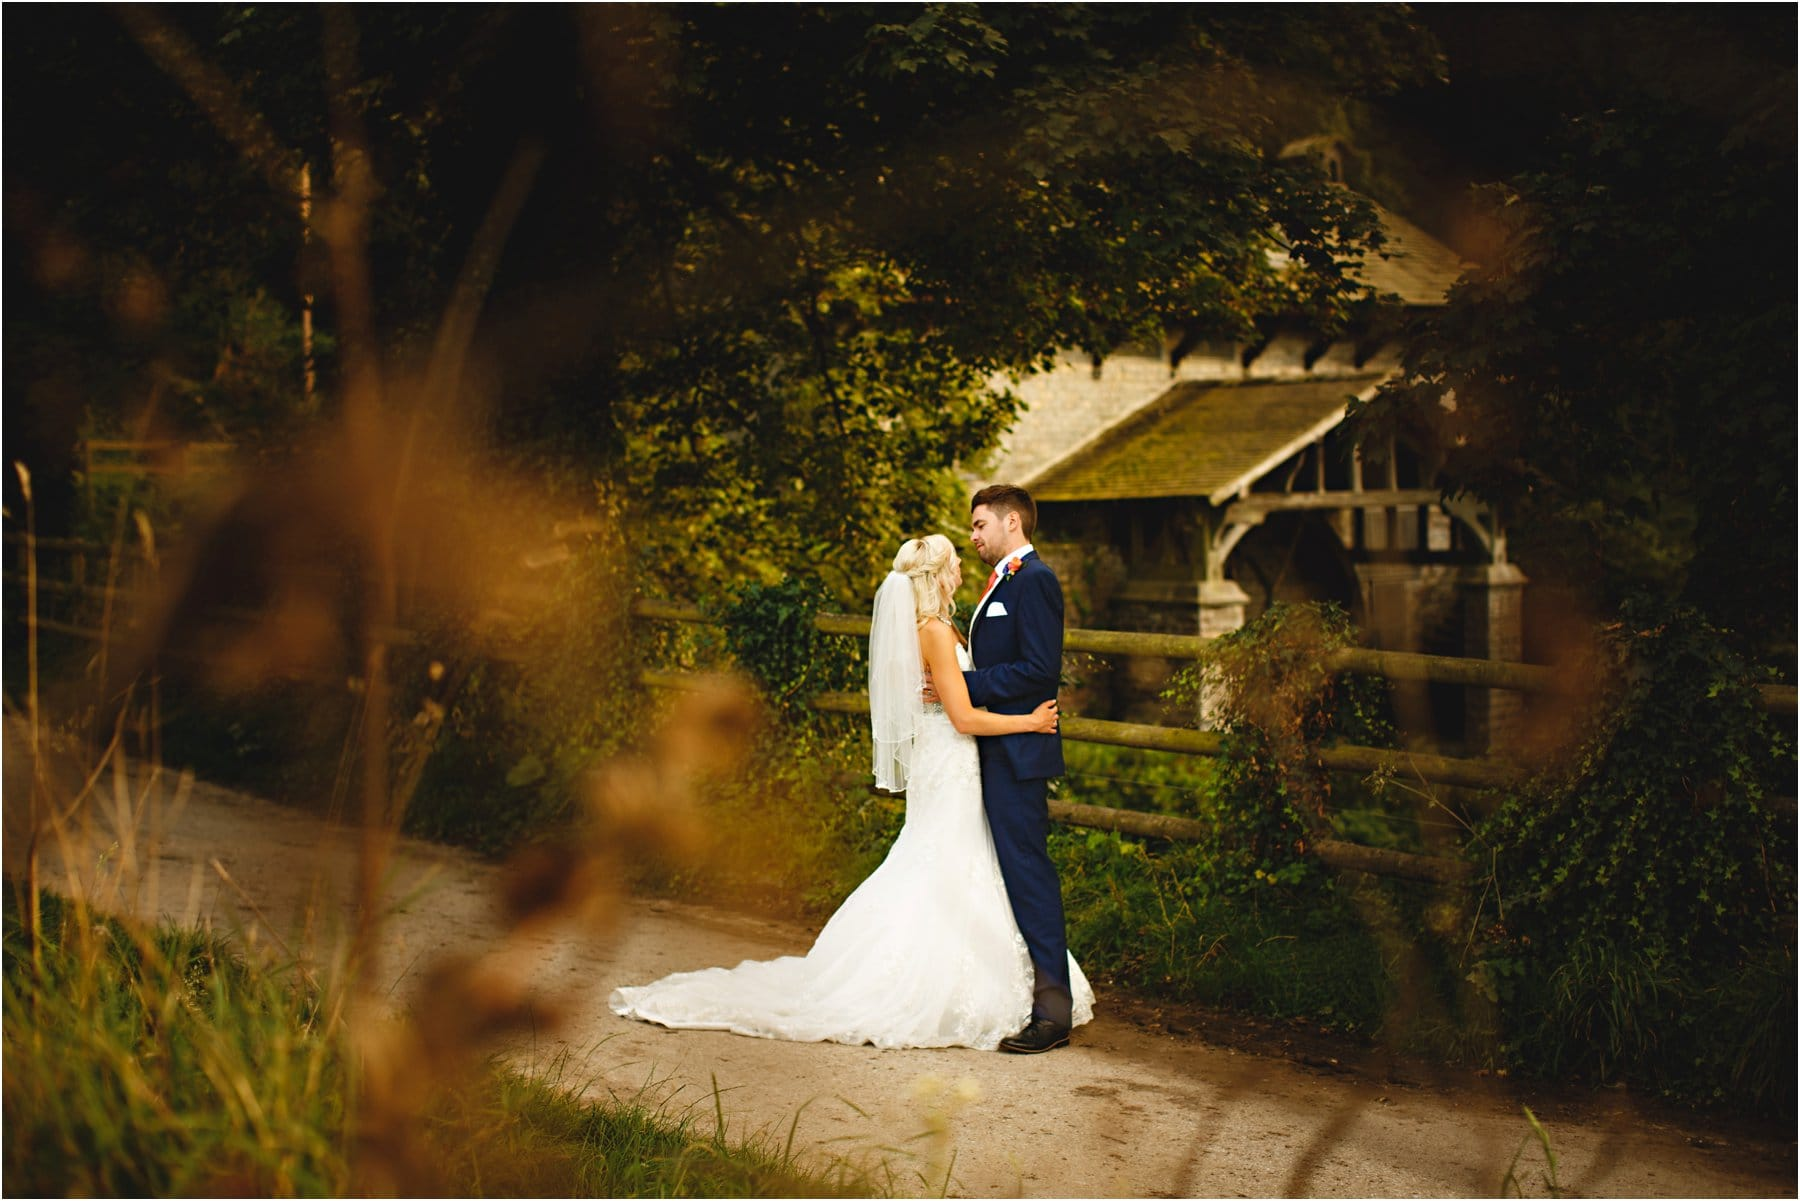 the bride & groom by the water mill